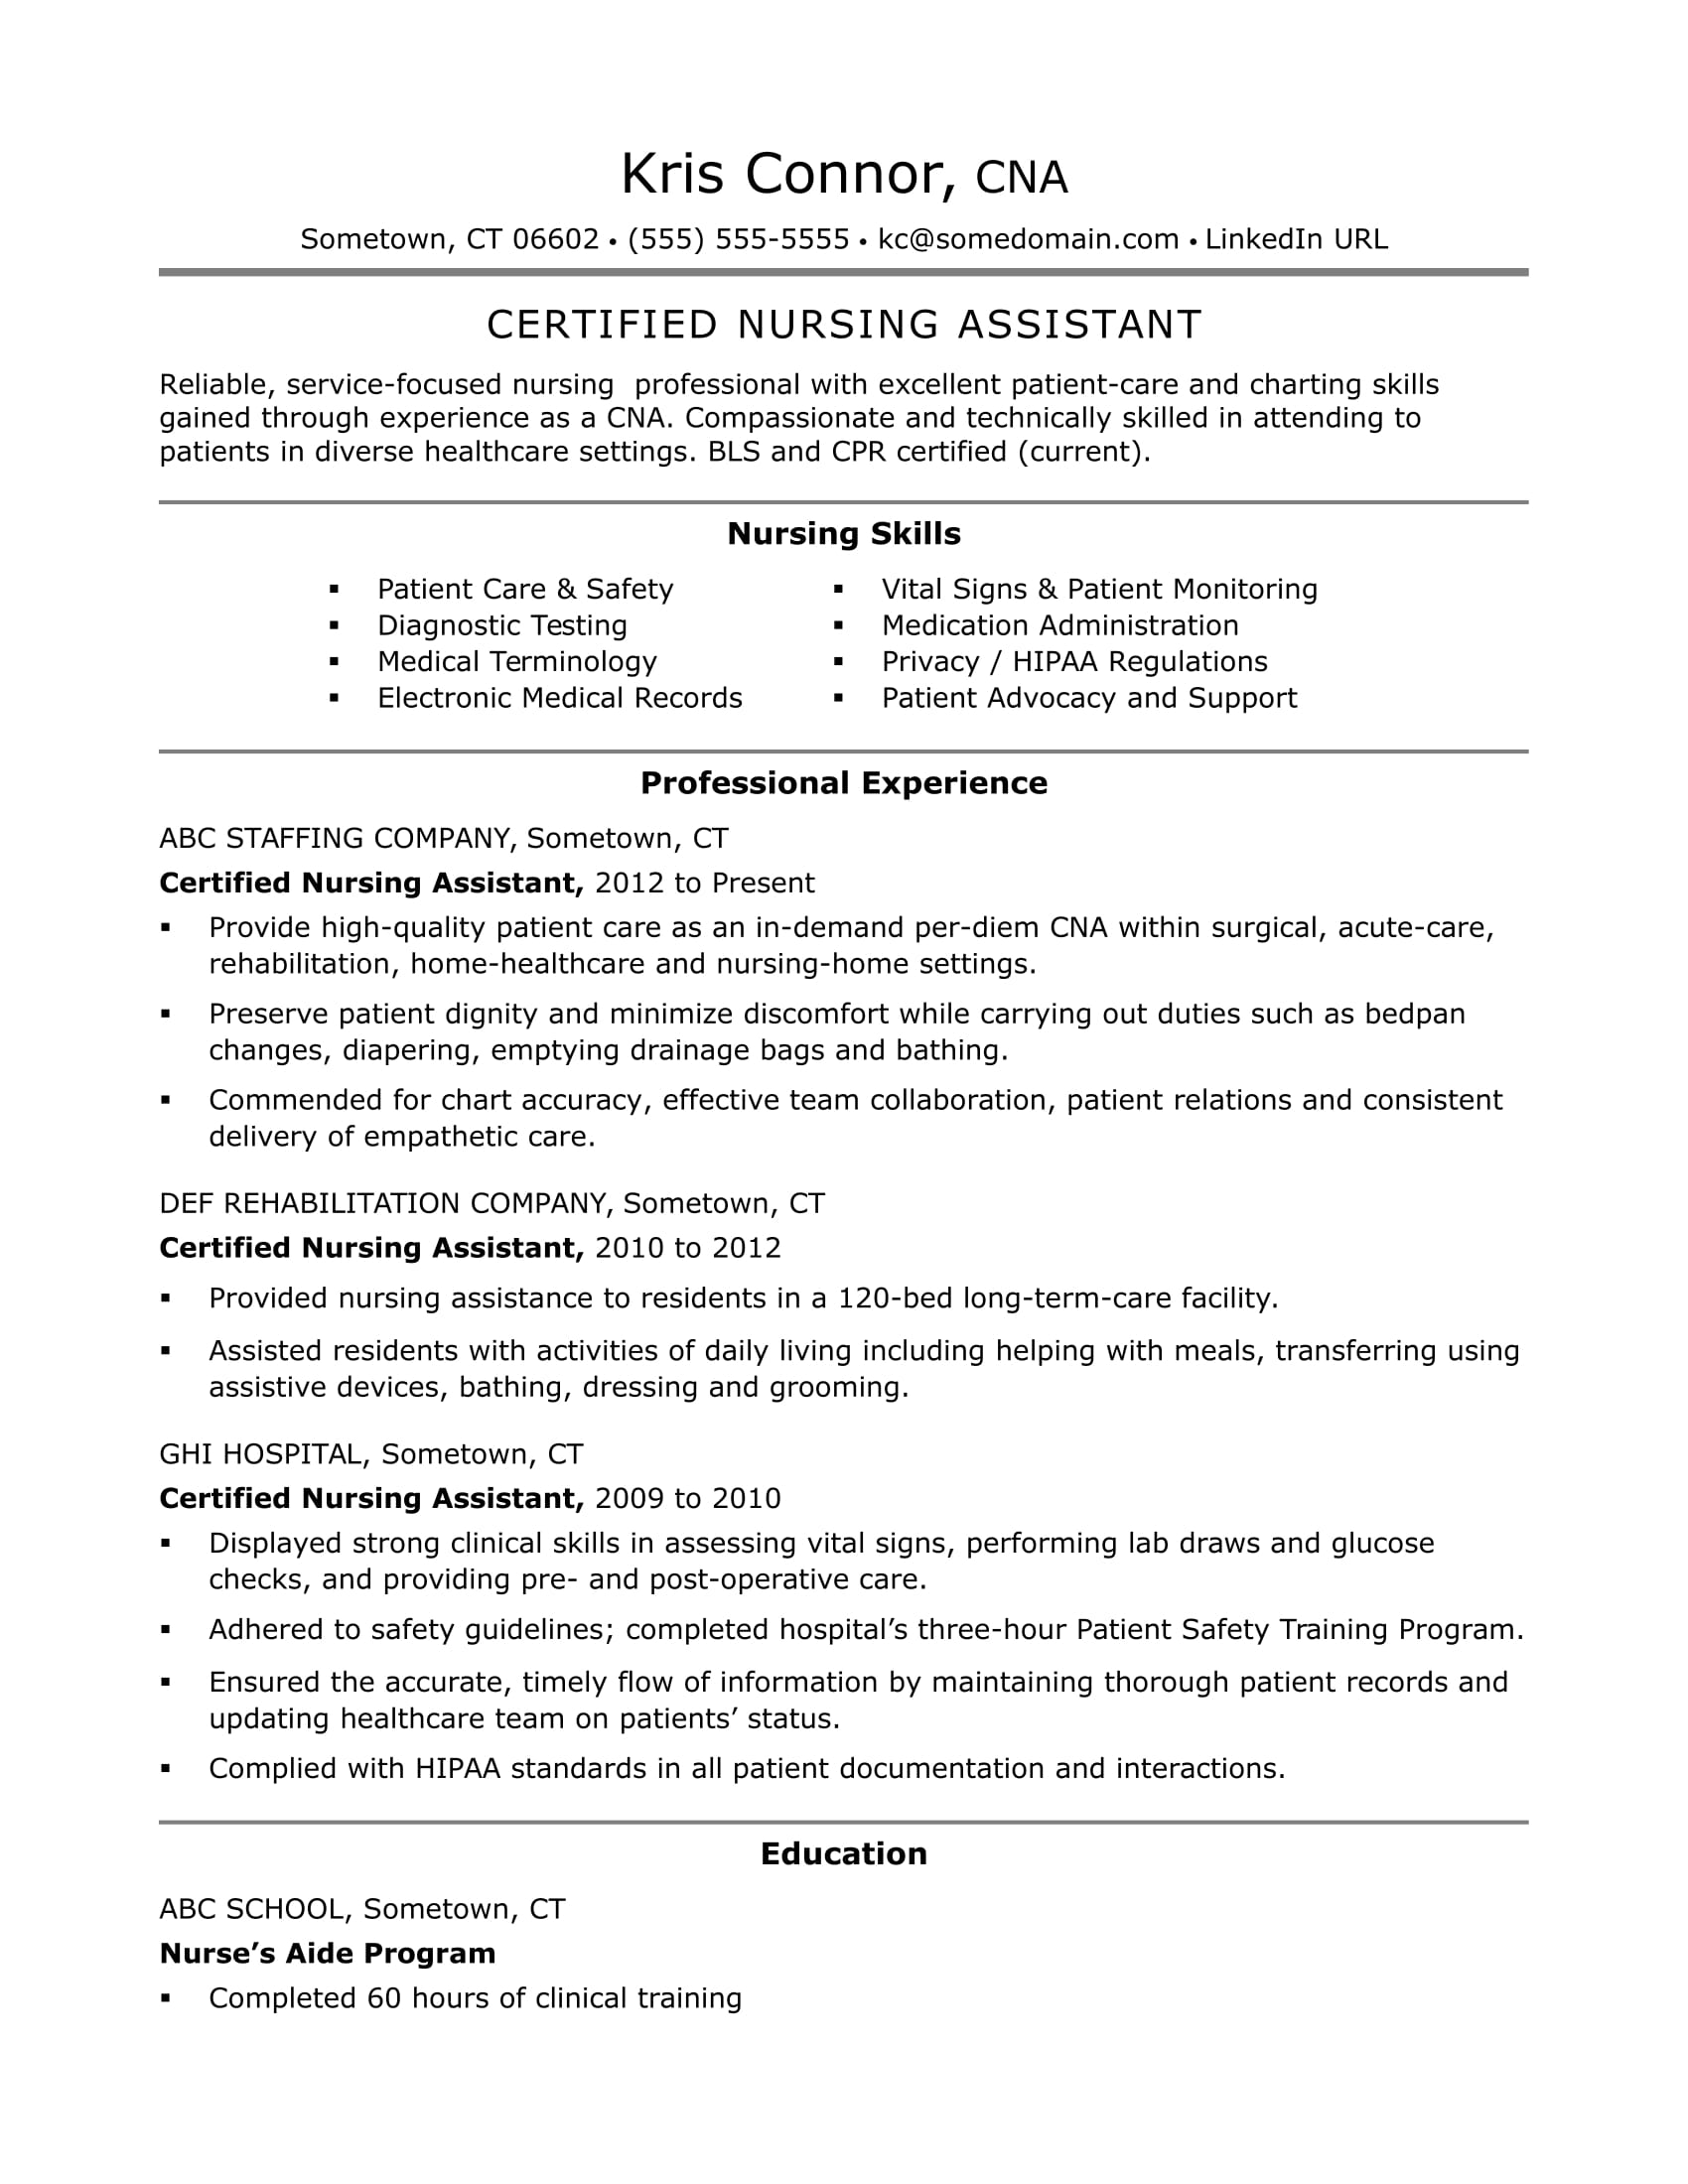 cna resume examples skills for cnas monster nursing clinical certified assistant family Resume Nursing Clinical Skills For Resume